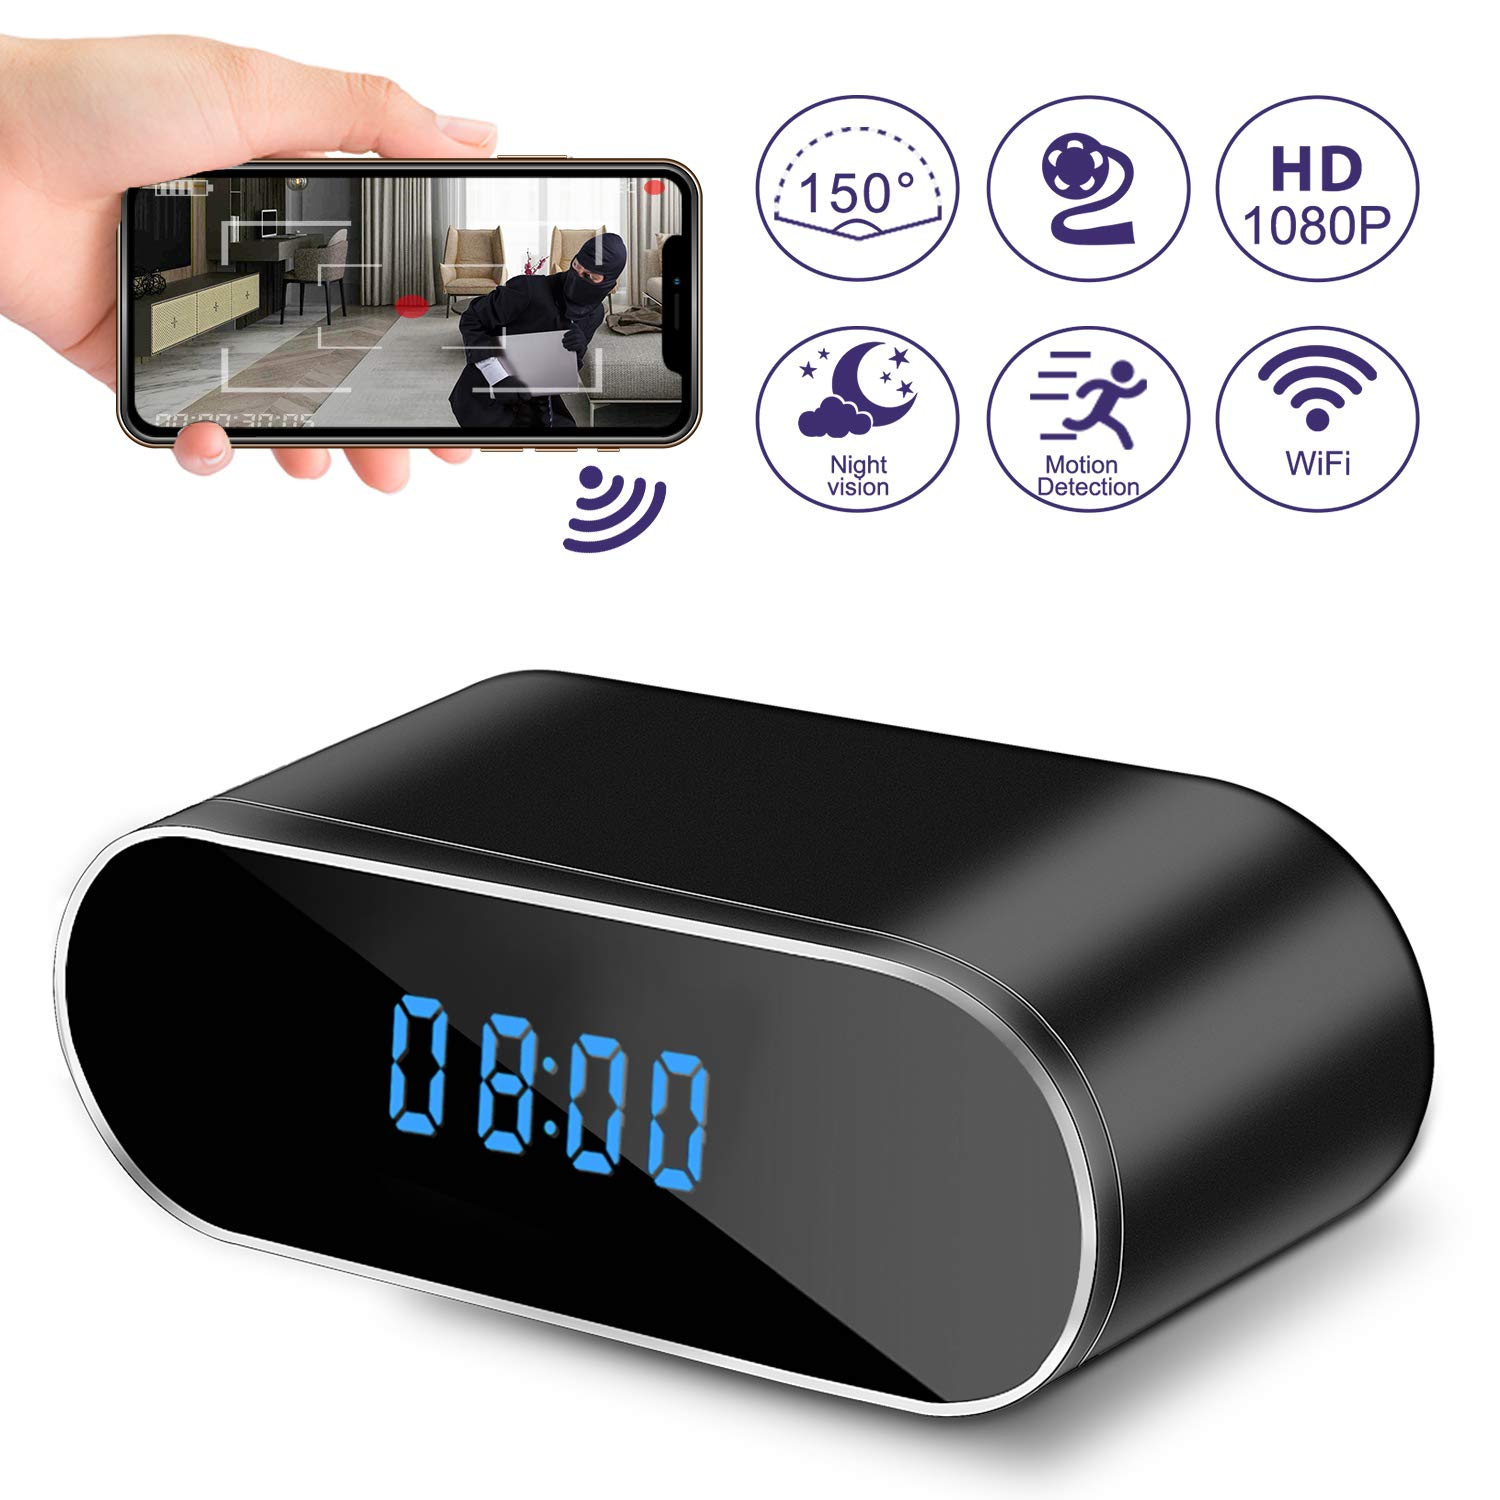 Hidden Camera Clock, WiFi Spy Camera Wireless Hidden, 1080P Nanny Cameras and Hidden Cameras with Night Vision and Motion Detective, Perfect 150 Angle Camera Alarm Clock for Home Security by Rewline